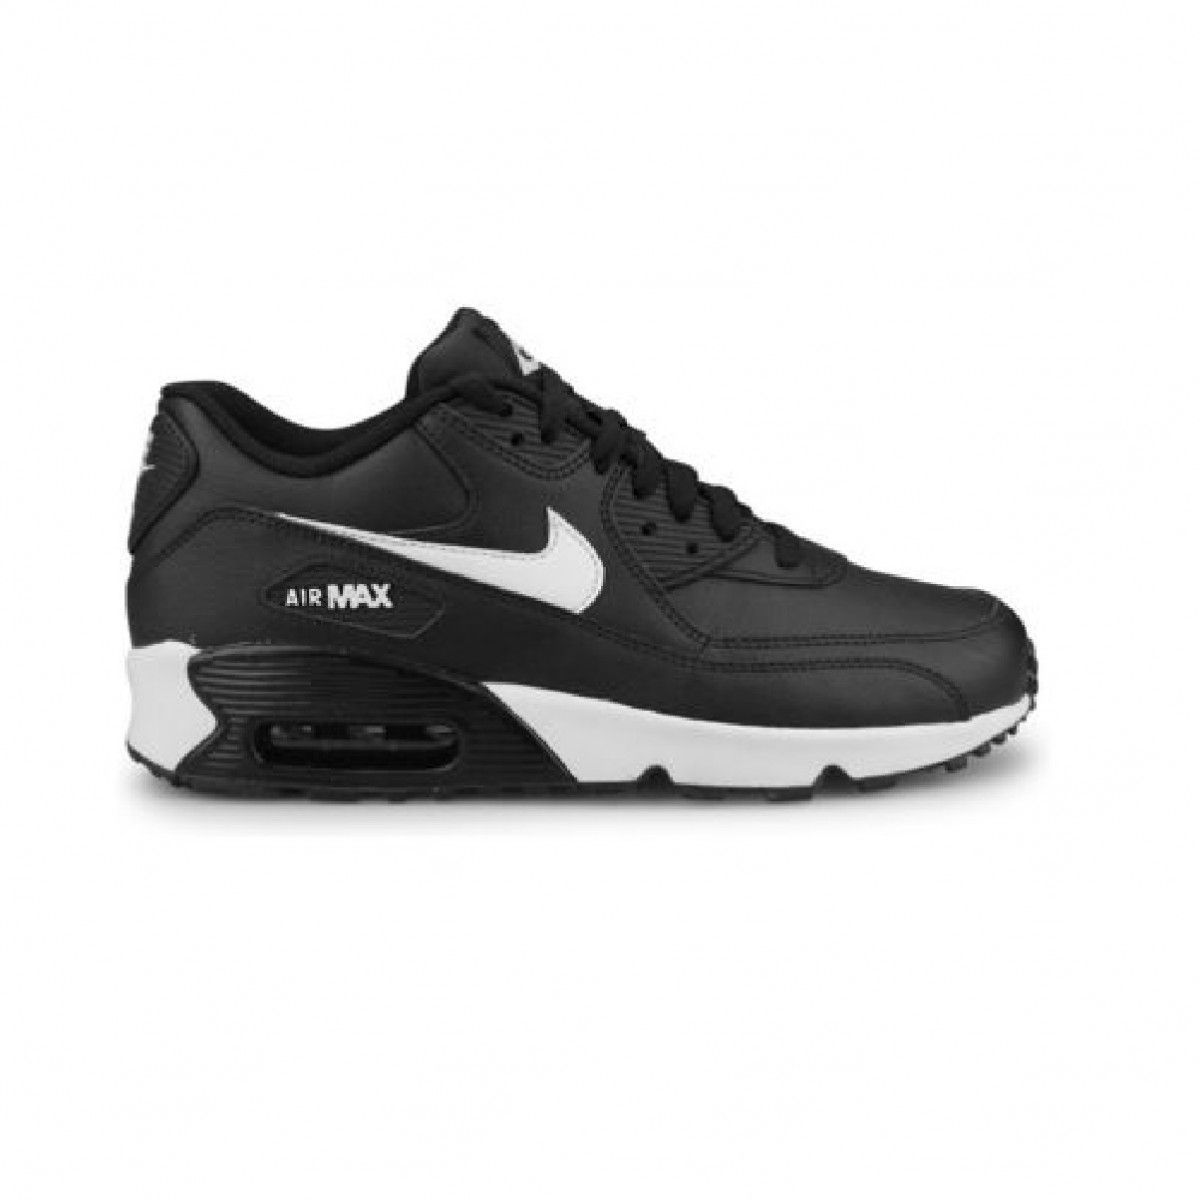 regarder d8abd 0dd4a Basket Mode Air Max 90 Leather (gs) - Taille : 36;36 1/2;37 ...